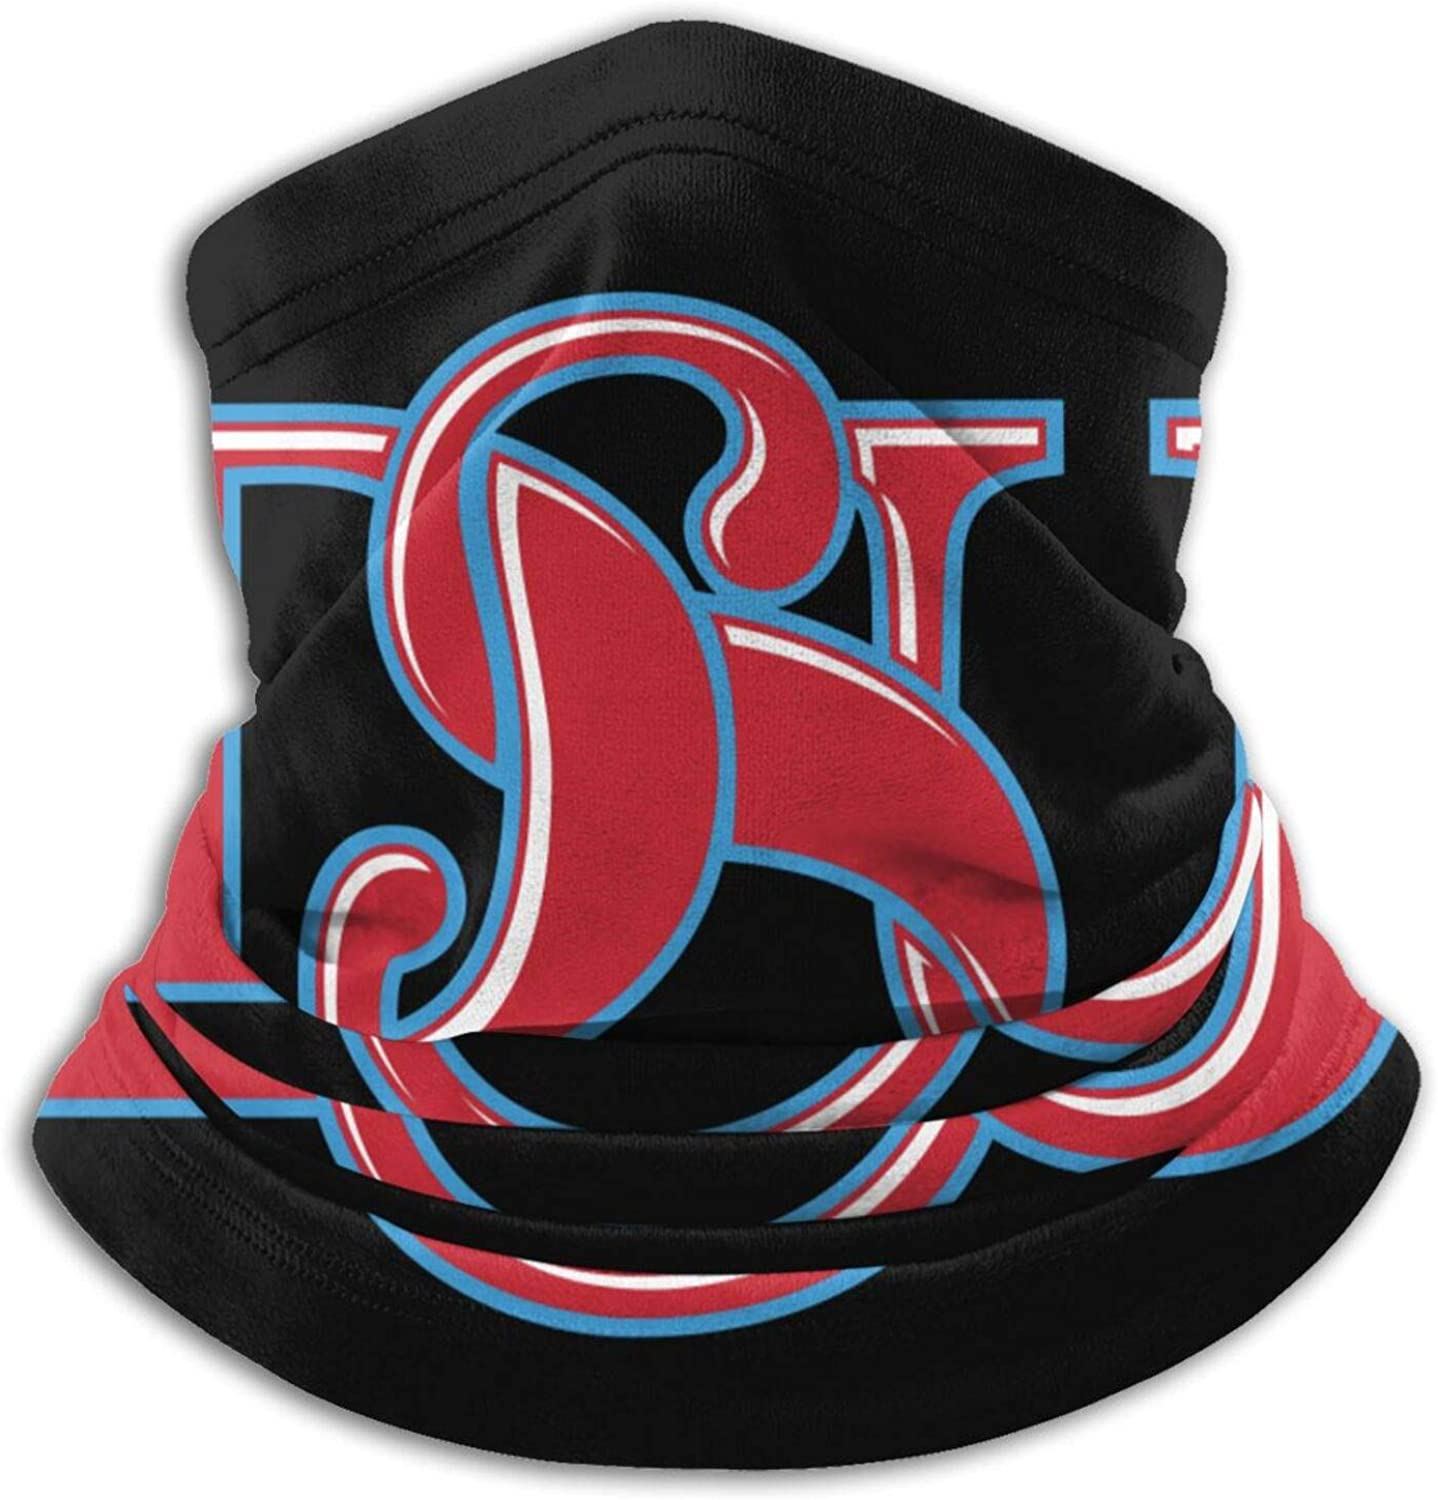 Delaware-State-University Logo Unisex Comfort Microfiber Neck Gaiter Variety Scarf Face Motorcycle Cycling Riding Running Headbands.